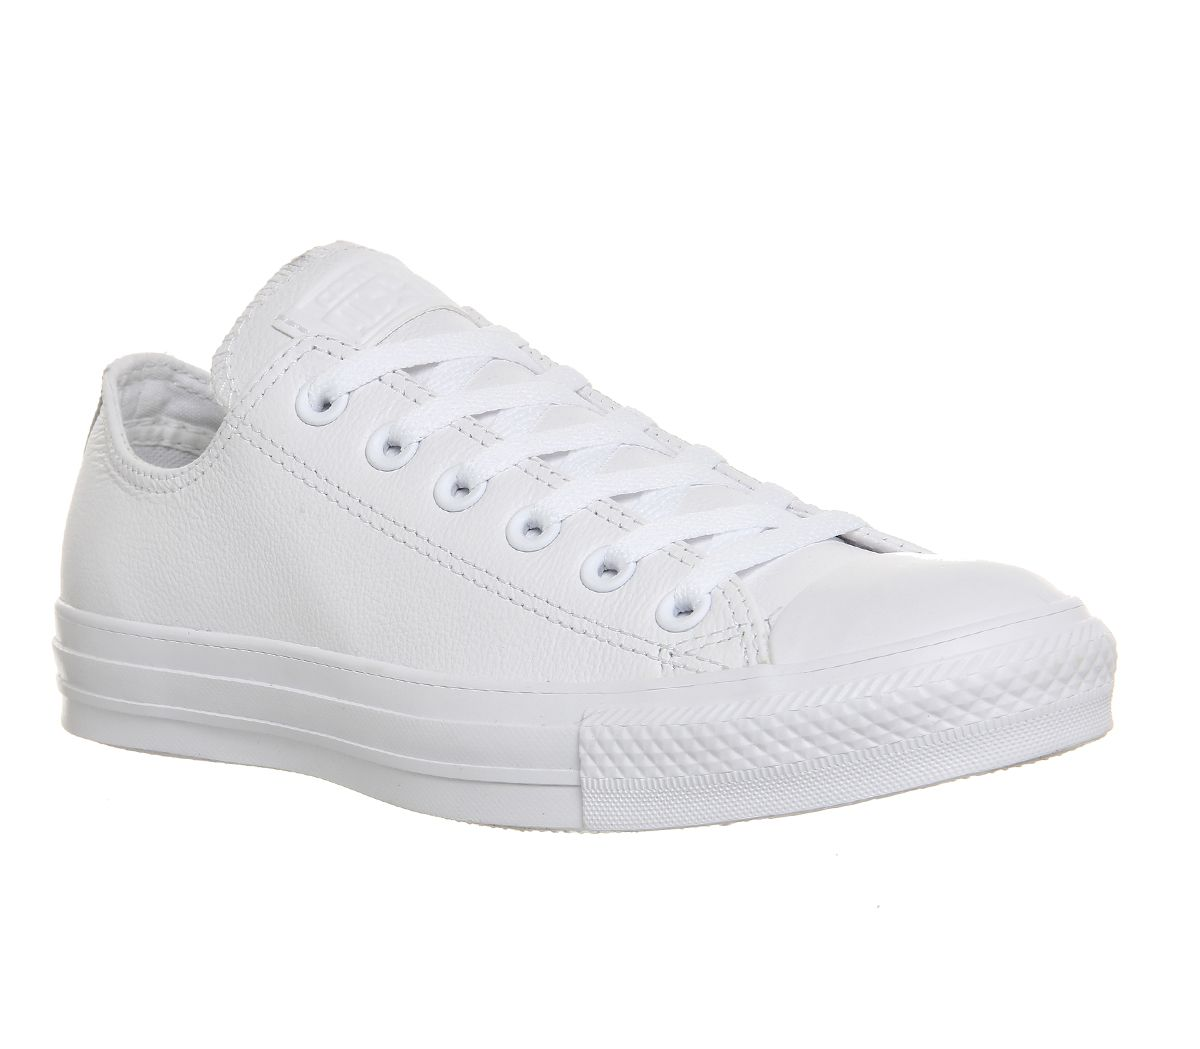 c35287b6e6 Converse All Star Low Leather White Mono Leather - Unisex Sports